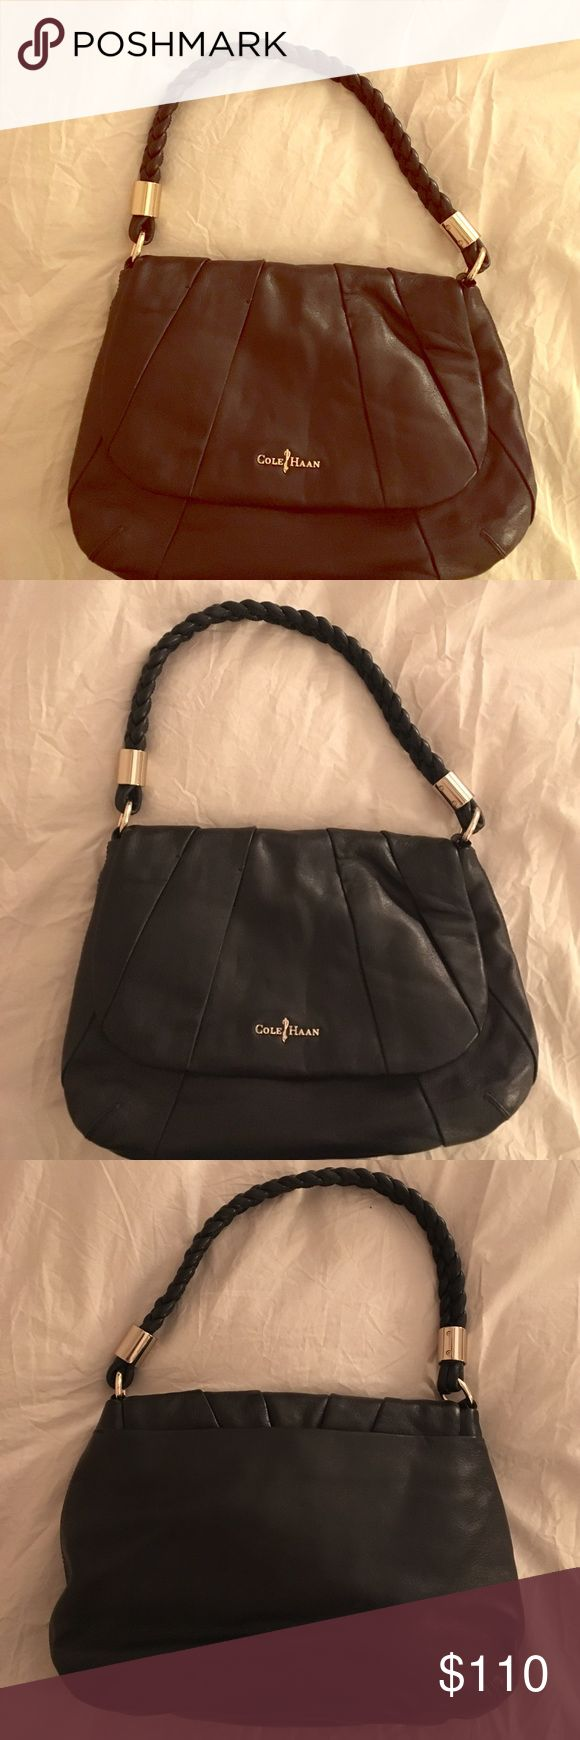 New without tags black leather Cole Haan purse Soft, genuine black leather Cole Haan handbag with braided leather strap and gold accents. Purse measures 13 inches wide and 9 inches top to bottom. The interior is a rich purple with two inside pockets. Thanks for visiting! Cole Haan Bags Shoulder Bags